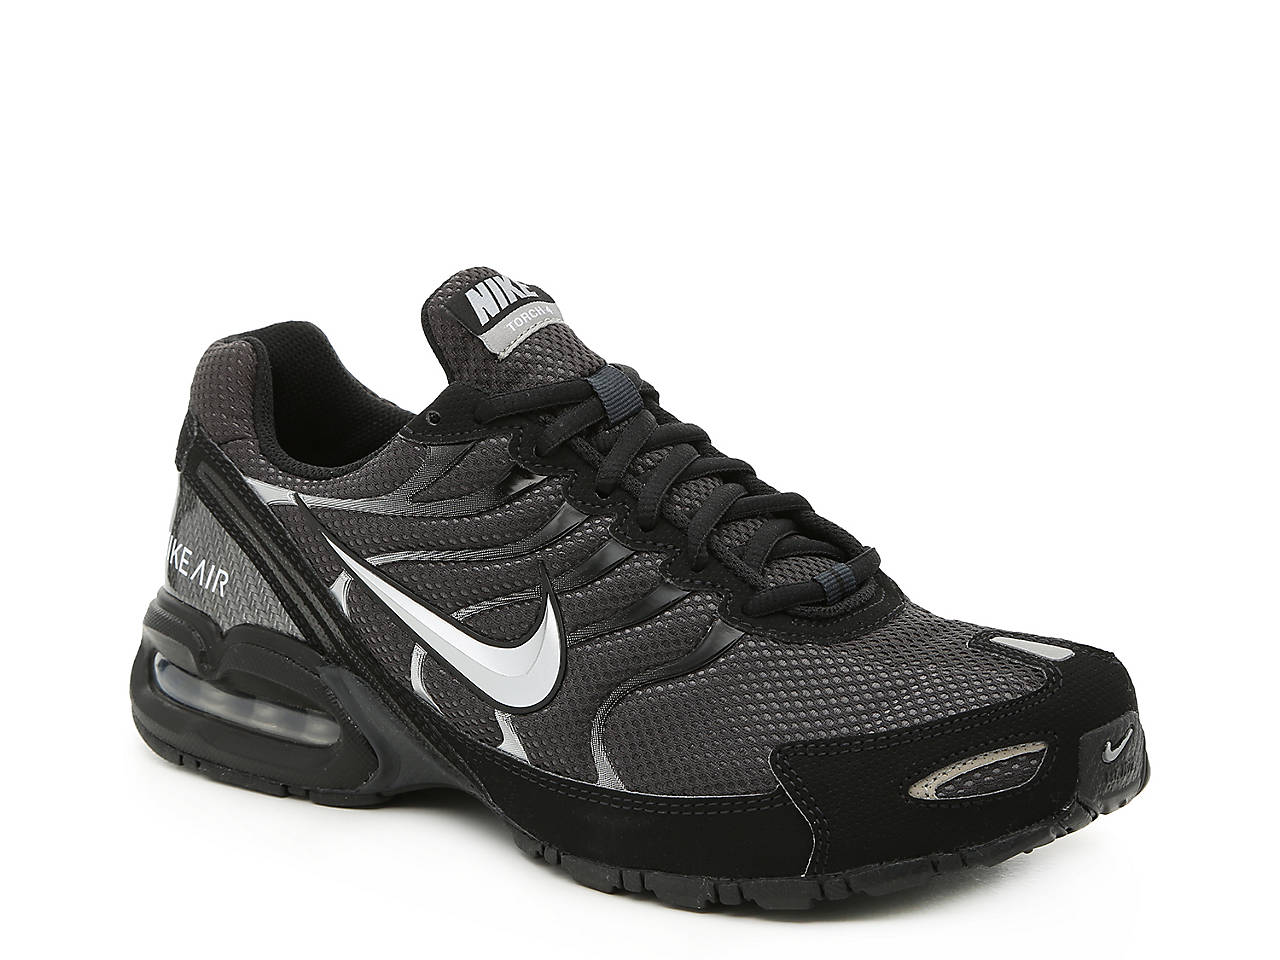 new styles df854 487b7 Nike. Air Max Torch 4 Running Shoe ...